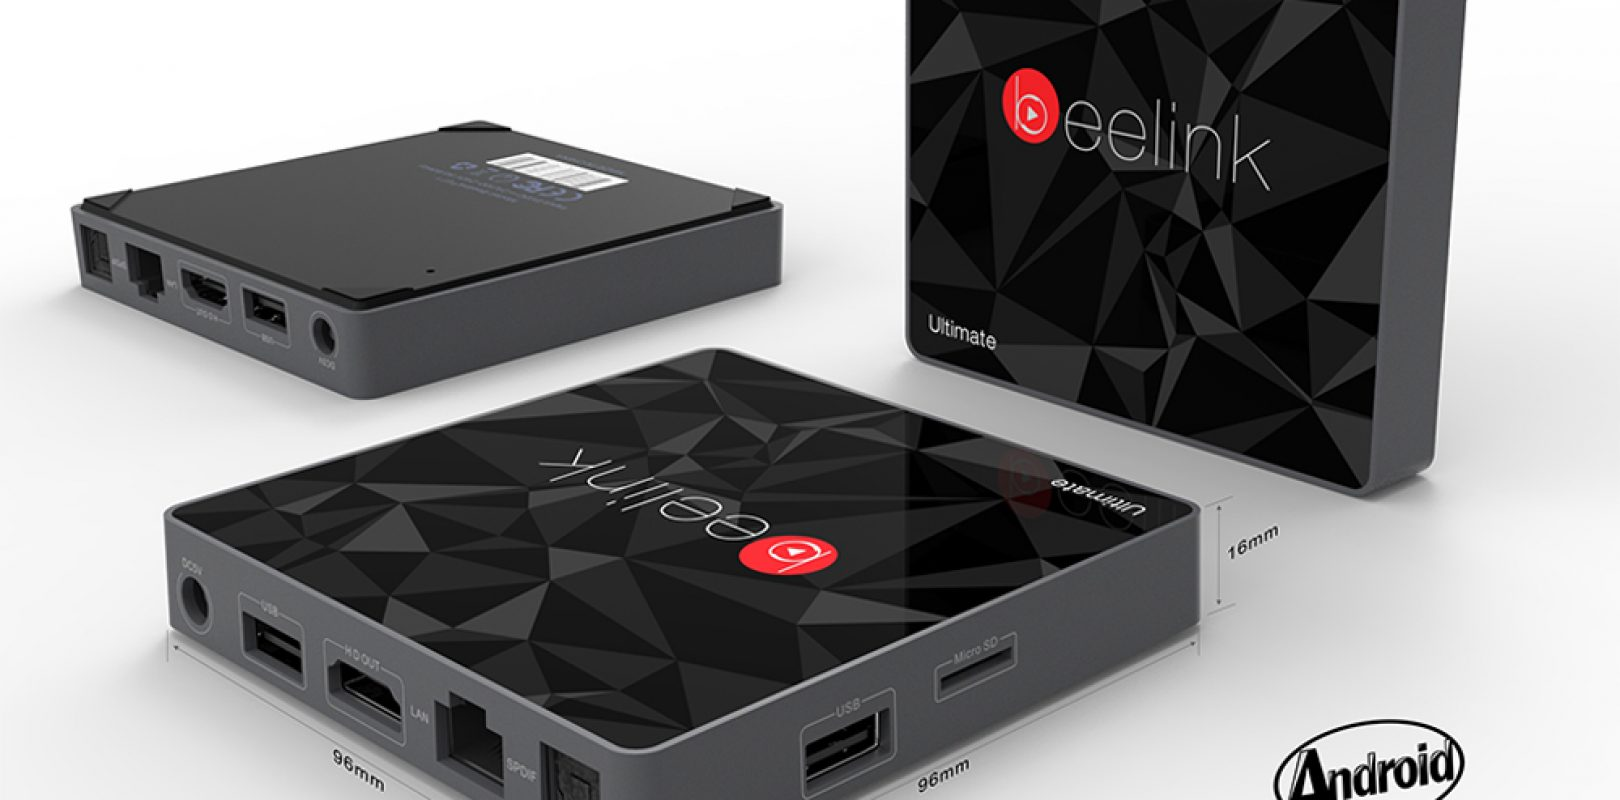 Beelink GT1 Ultimate - Amilogic S912 3GB RAM Mini PC - TechTablets